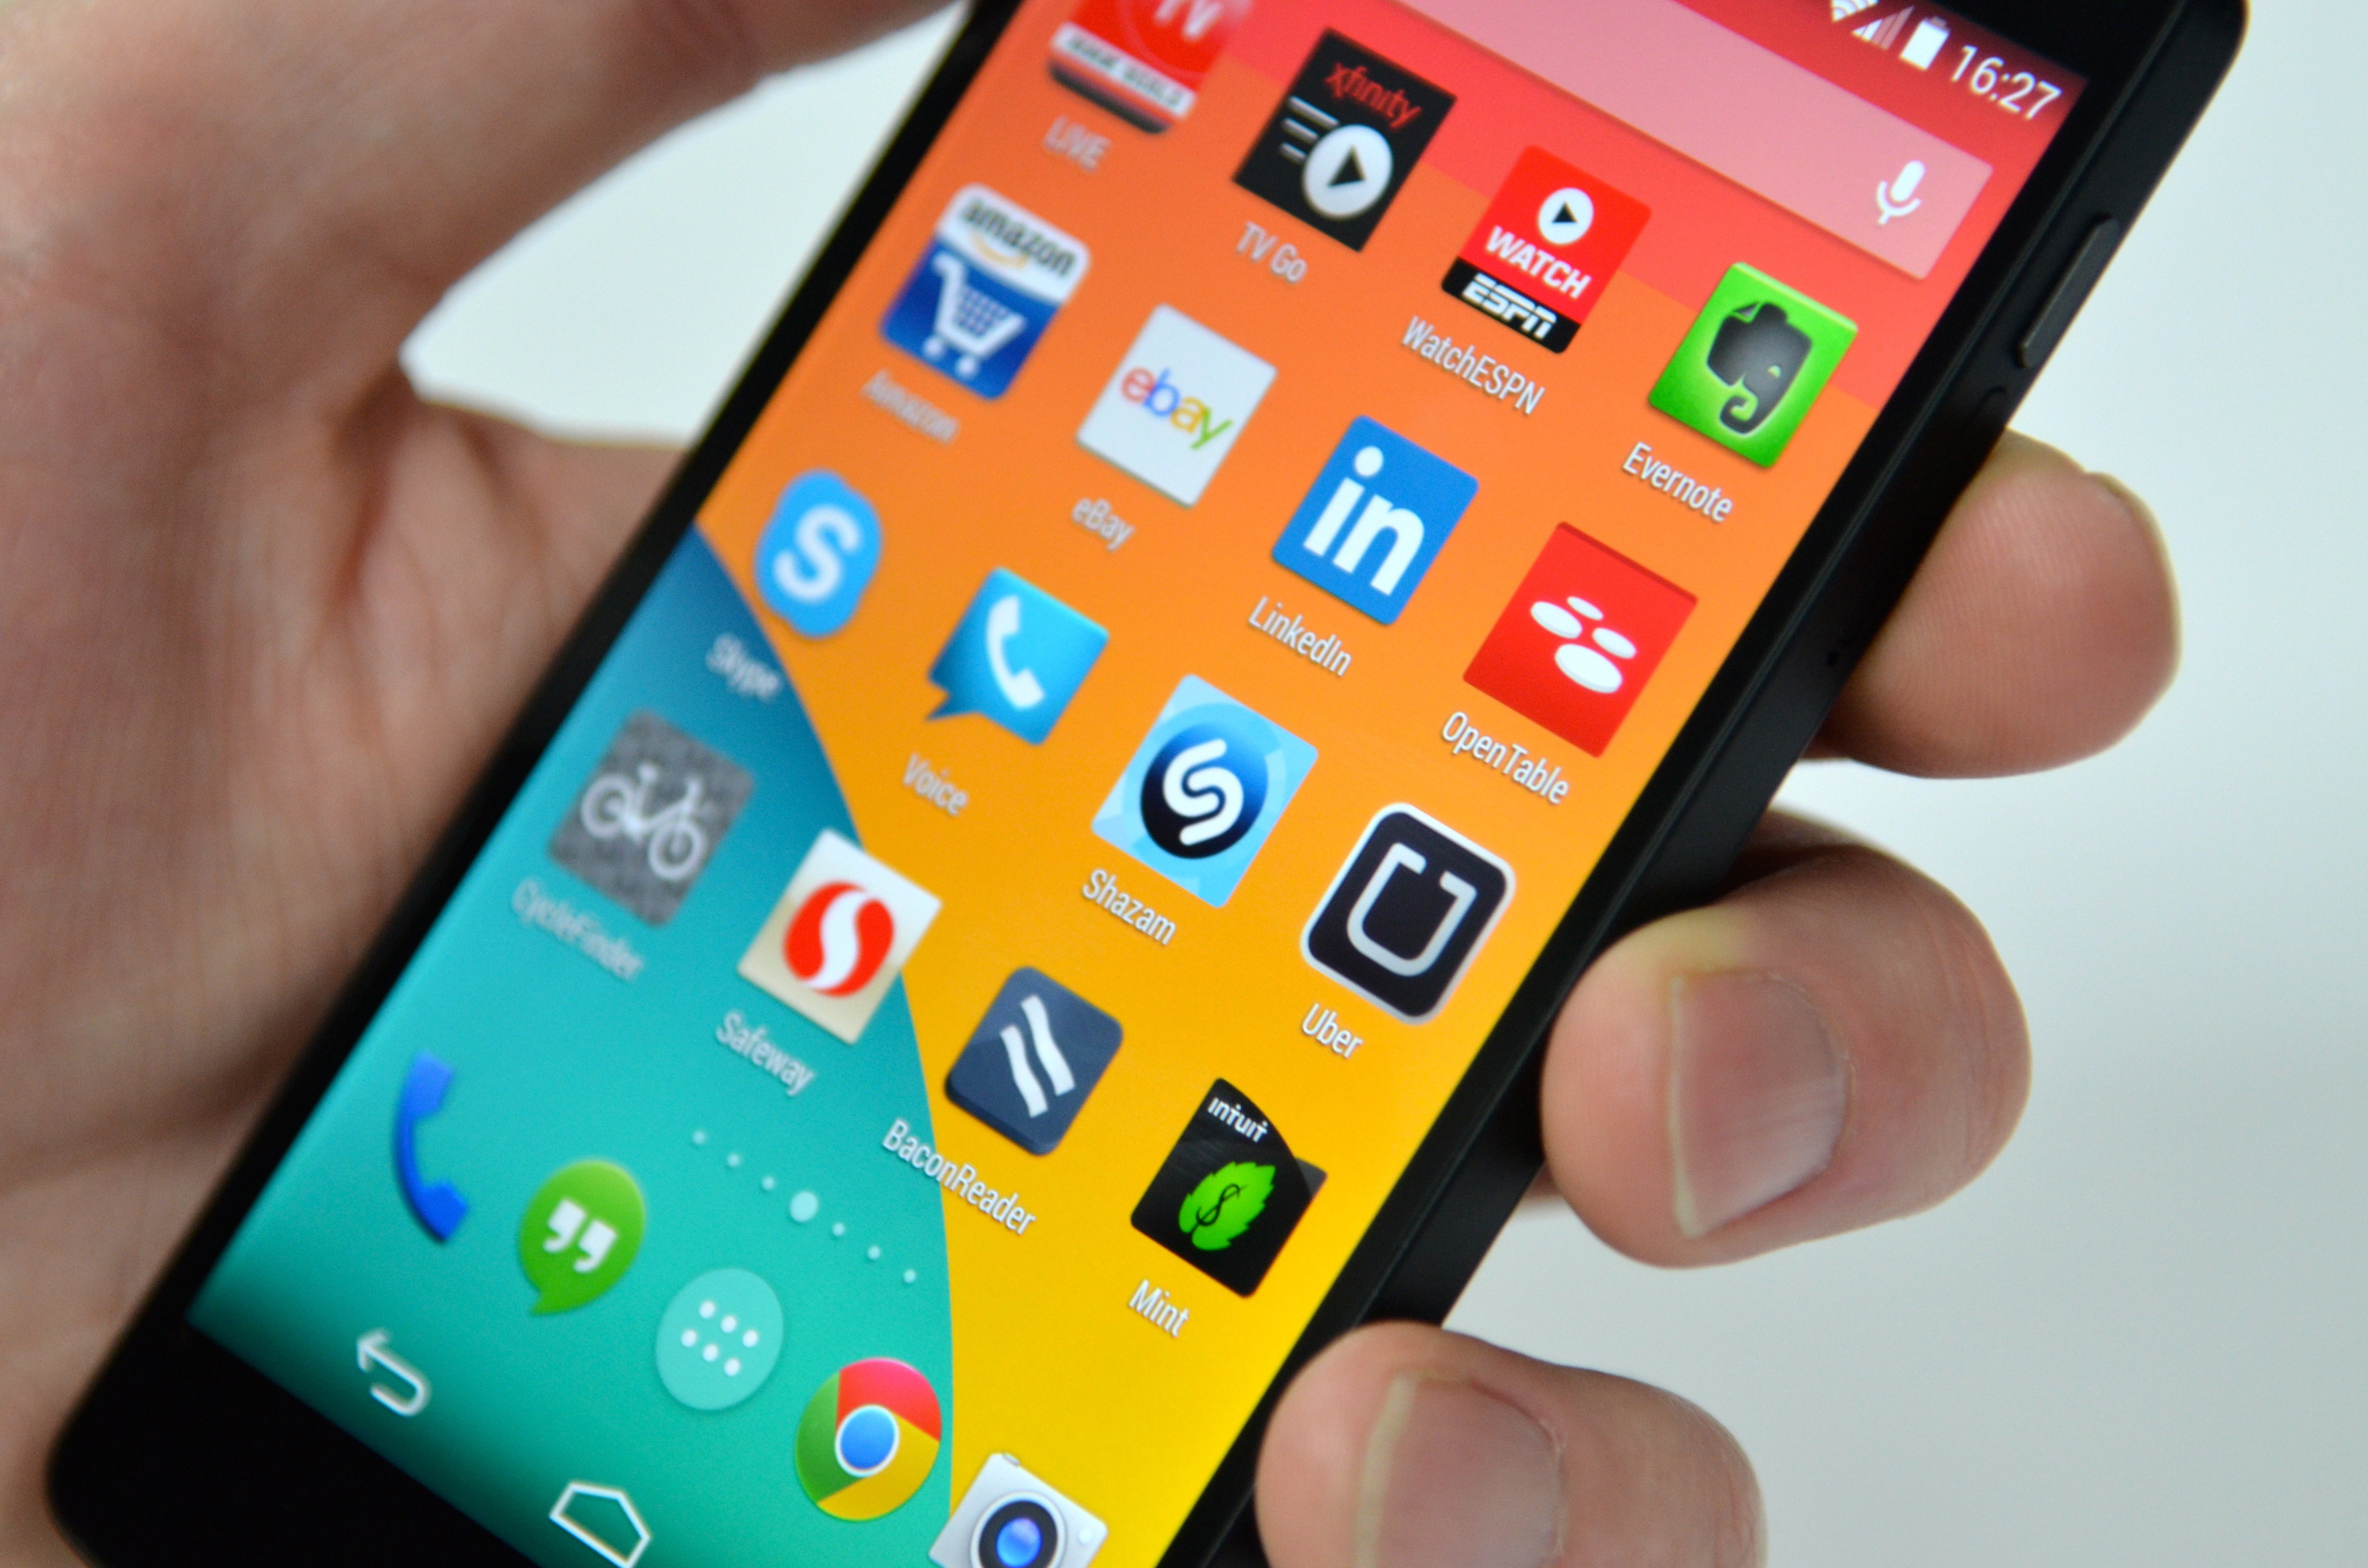 Phone New Applications For Android Phones google pushed developers to fix security flaws in 275000 android apps pcworld